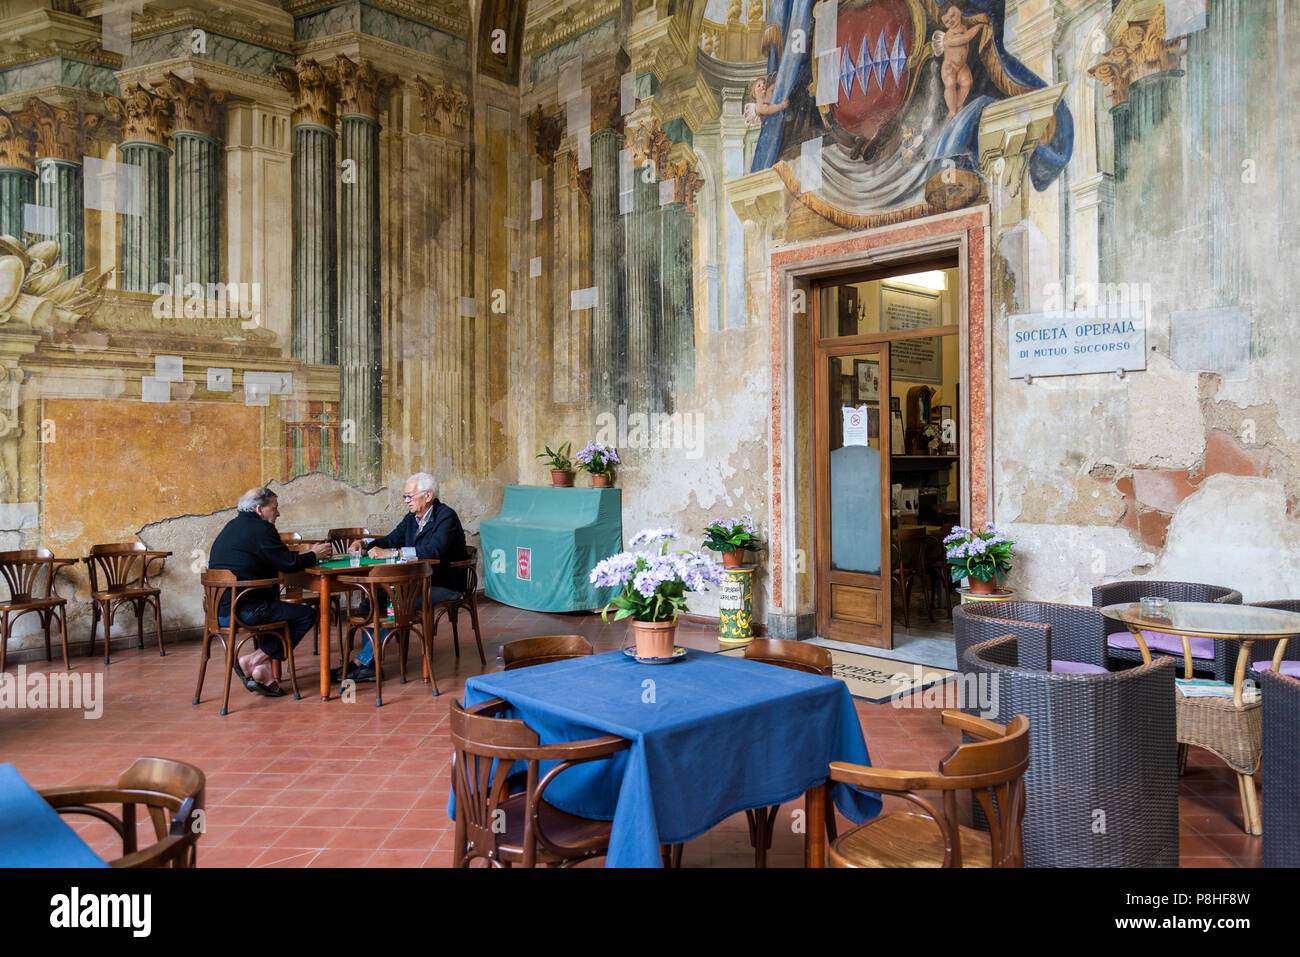 Sedile Dominova, a historic building with an open loggia with original frescos now serving as a working men's club, Two old men playing cards, Sorrent - Stock Image